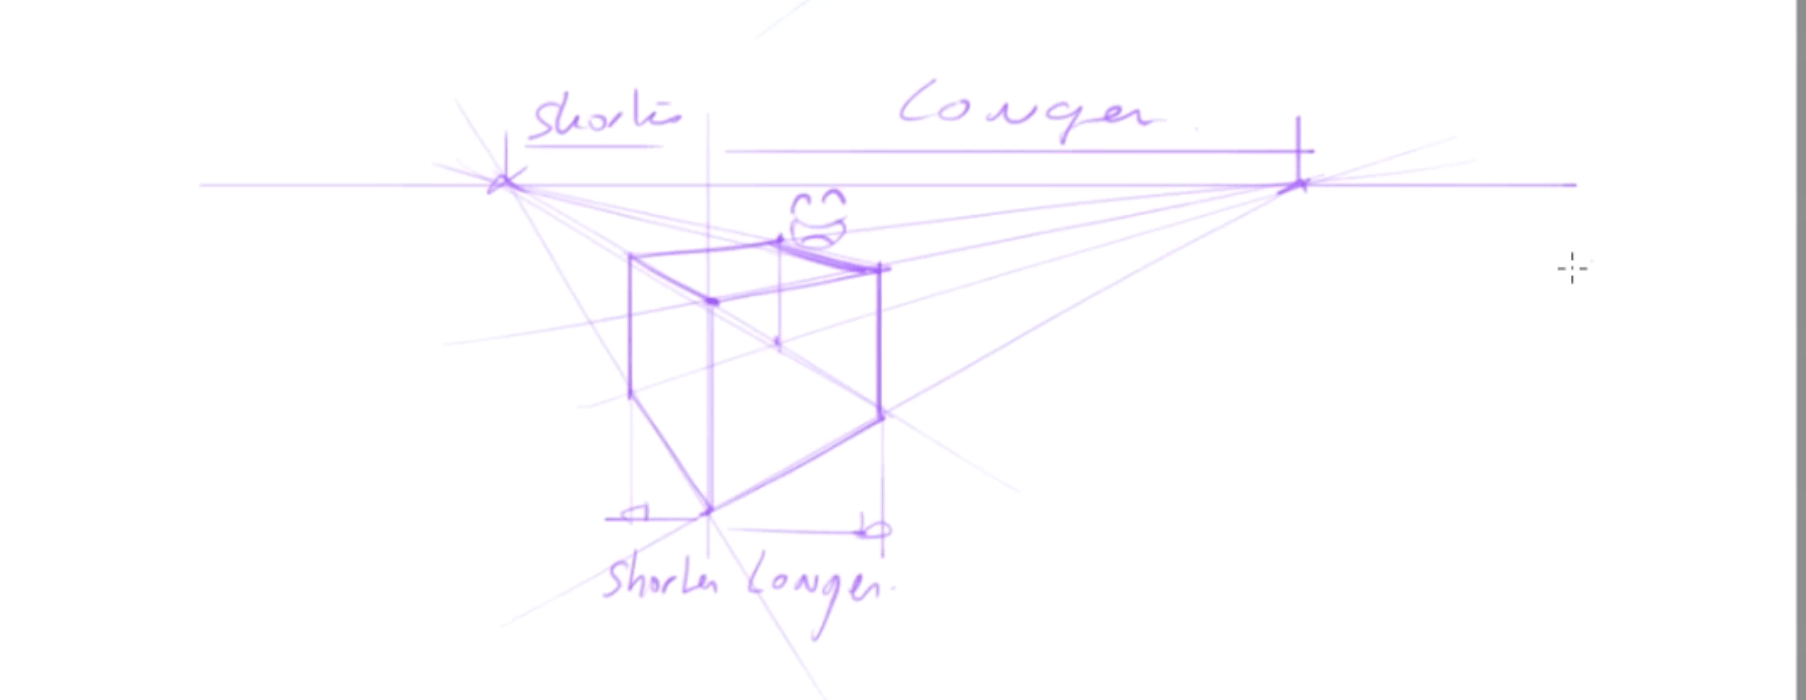 How to draw basic 3d volumes - cone - cube - cylinder - the design sketchbook - o